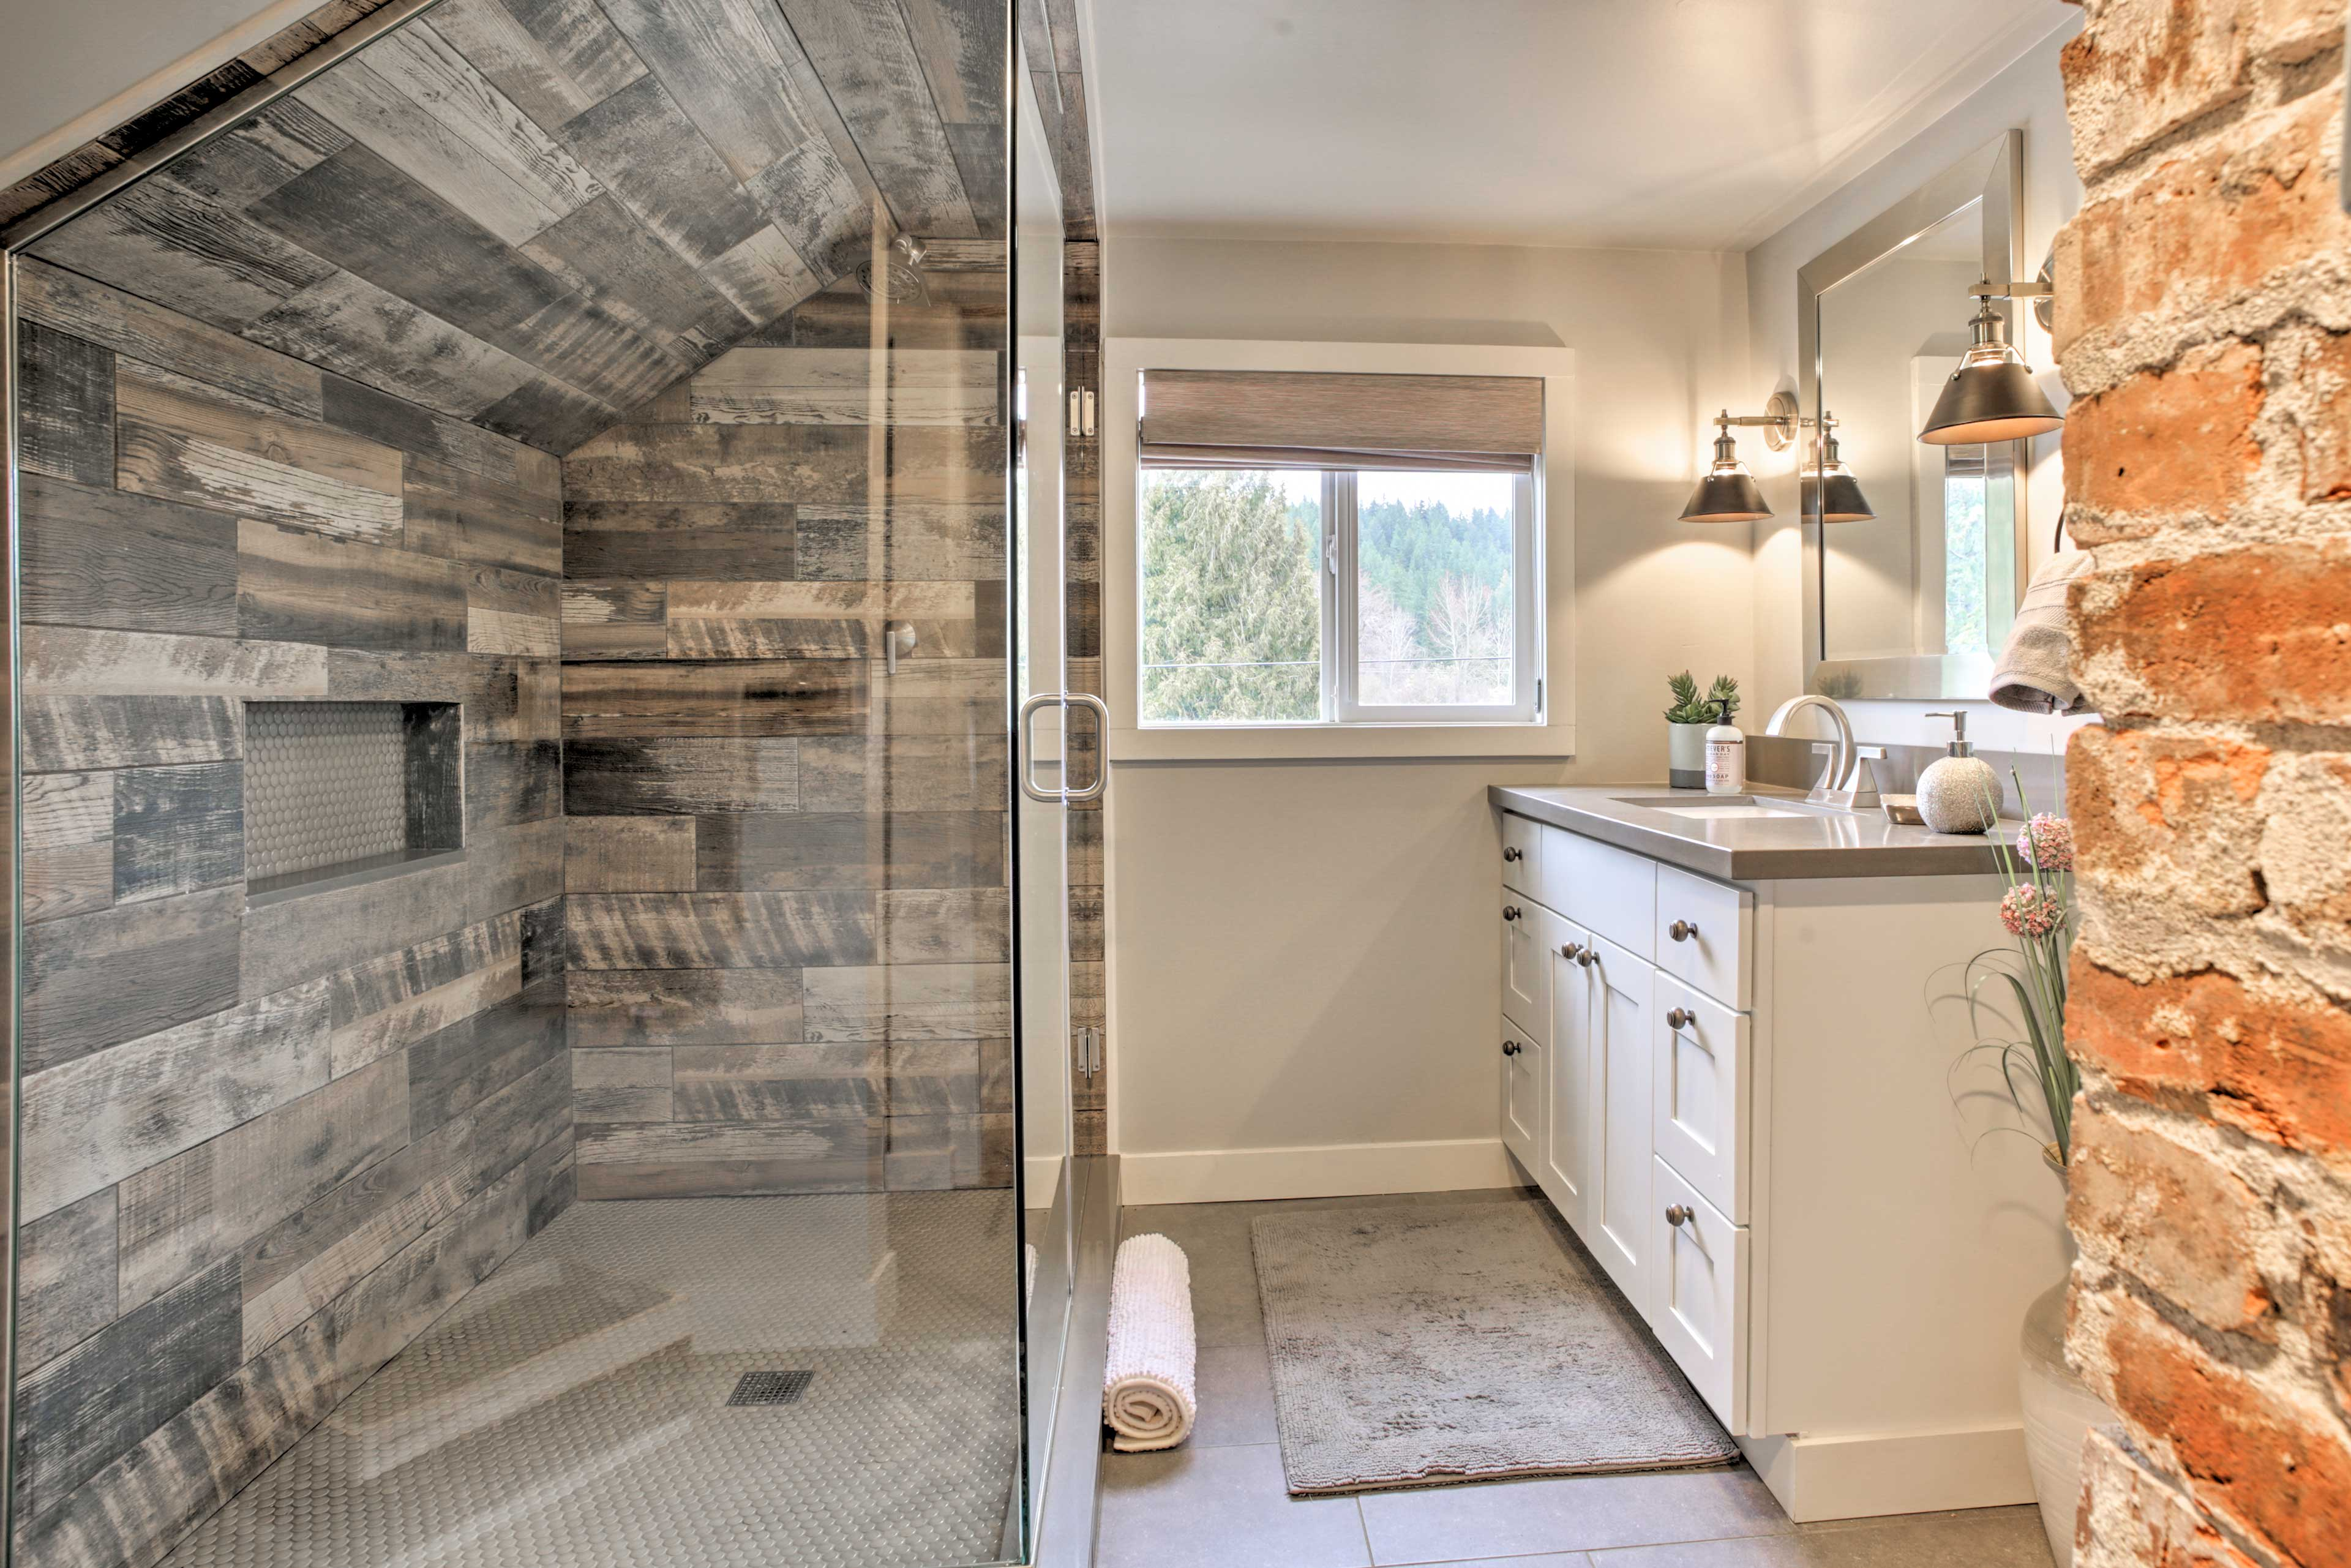 Rustic brick gives way to an elegant full bathroom with a glass-enclosed shower.